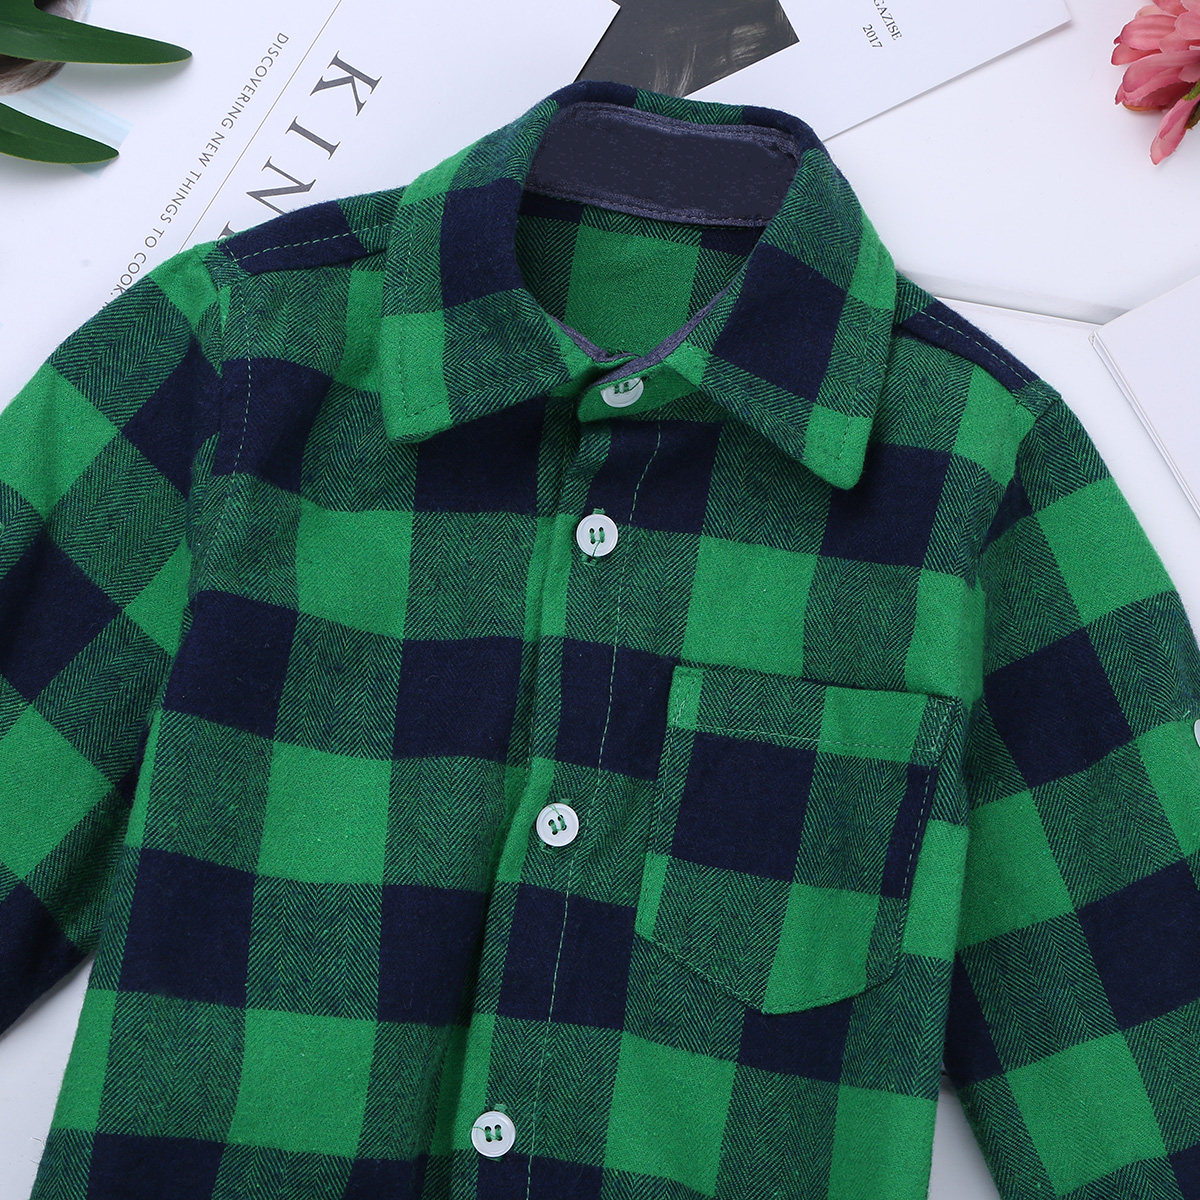 4e09cf74ef834 US $10.49 40% OFF|Baby Boy Clothes Bodysuit Long Sleeve Winter Infantil  Bebe Boys Clothes Plaid Button up Shirt Bodysuits for First Birthday  Party-in ...